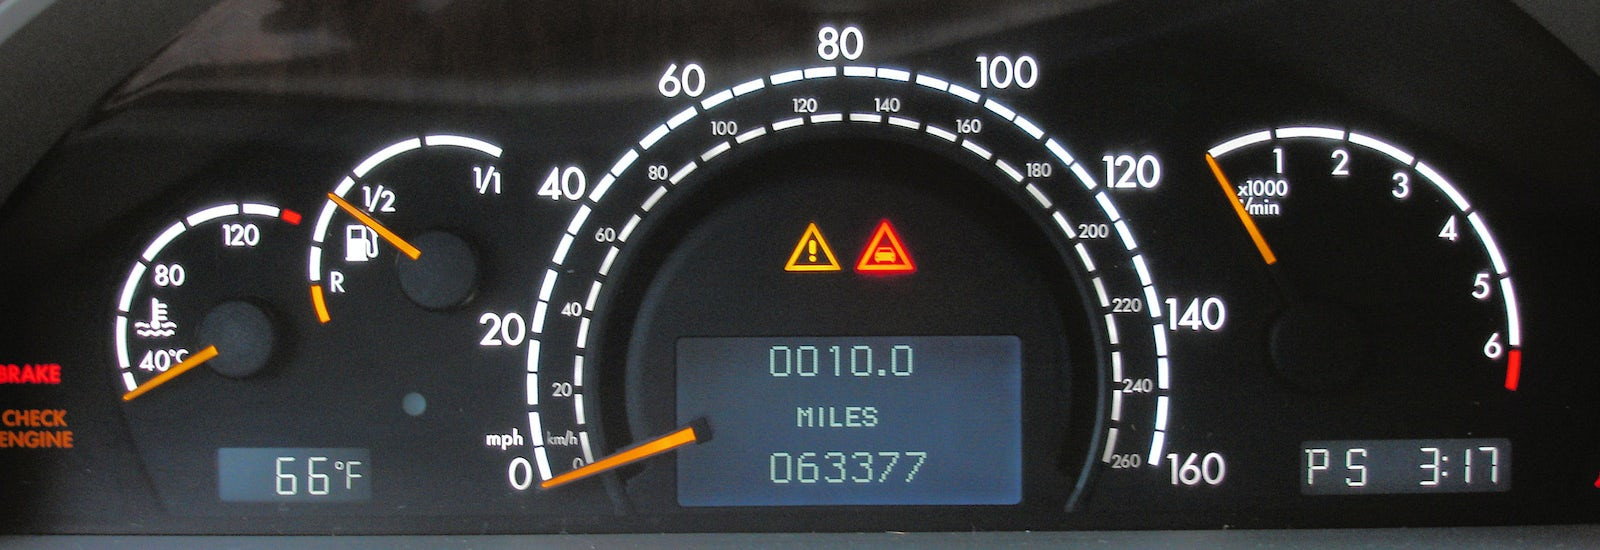 How Many Miles Can You Drive A Rental Car